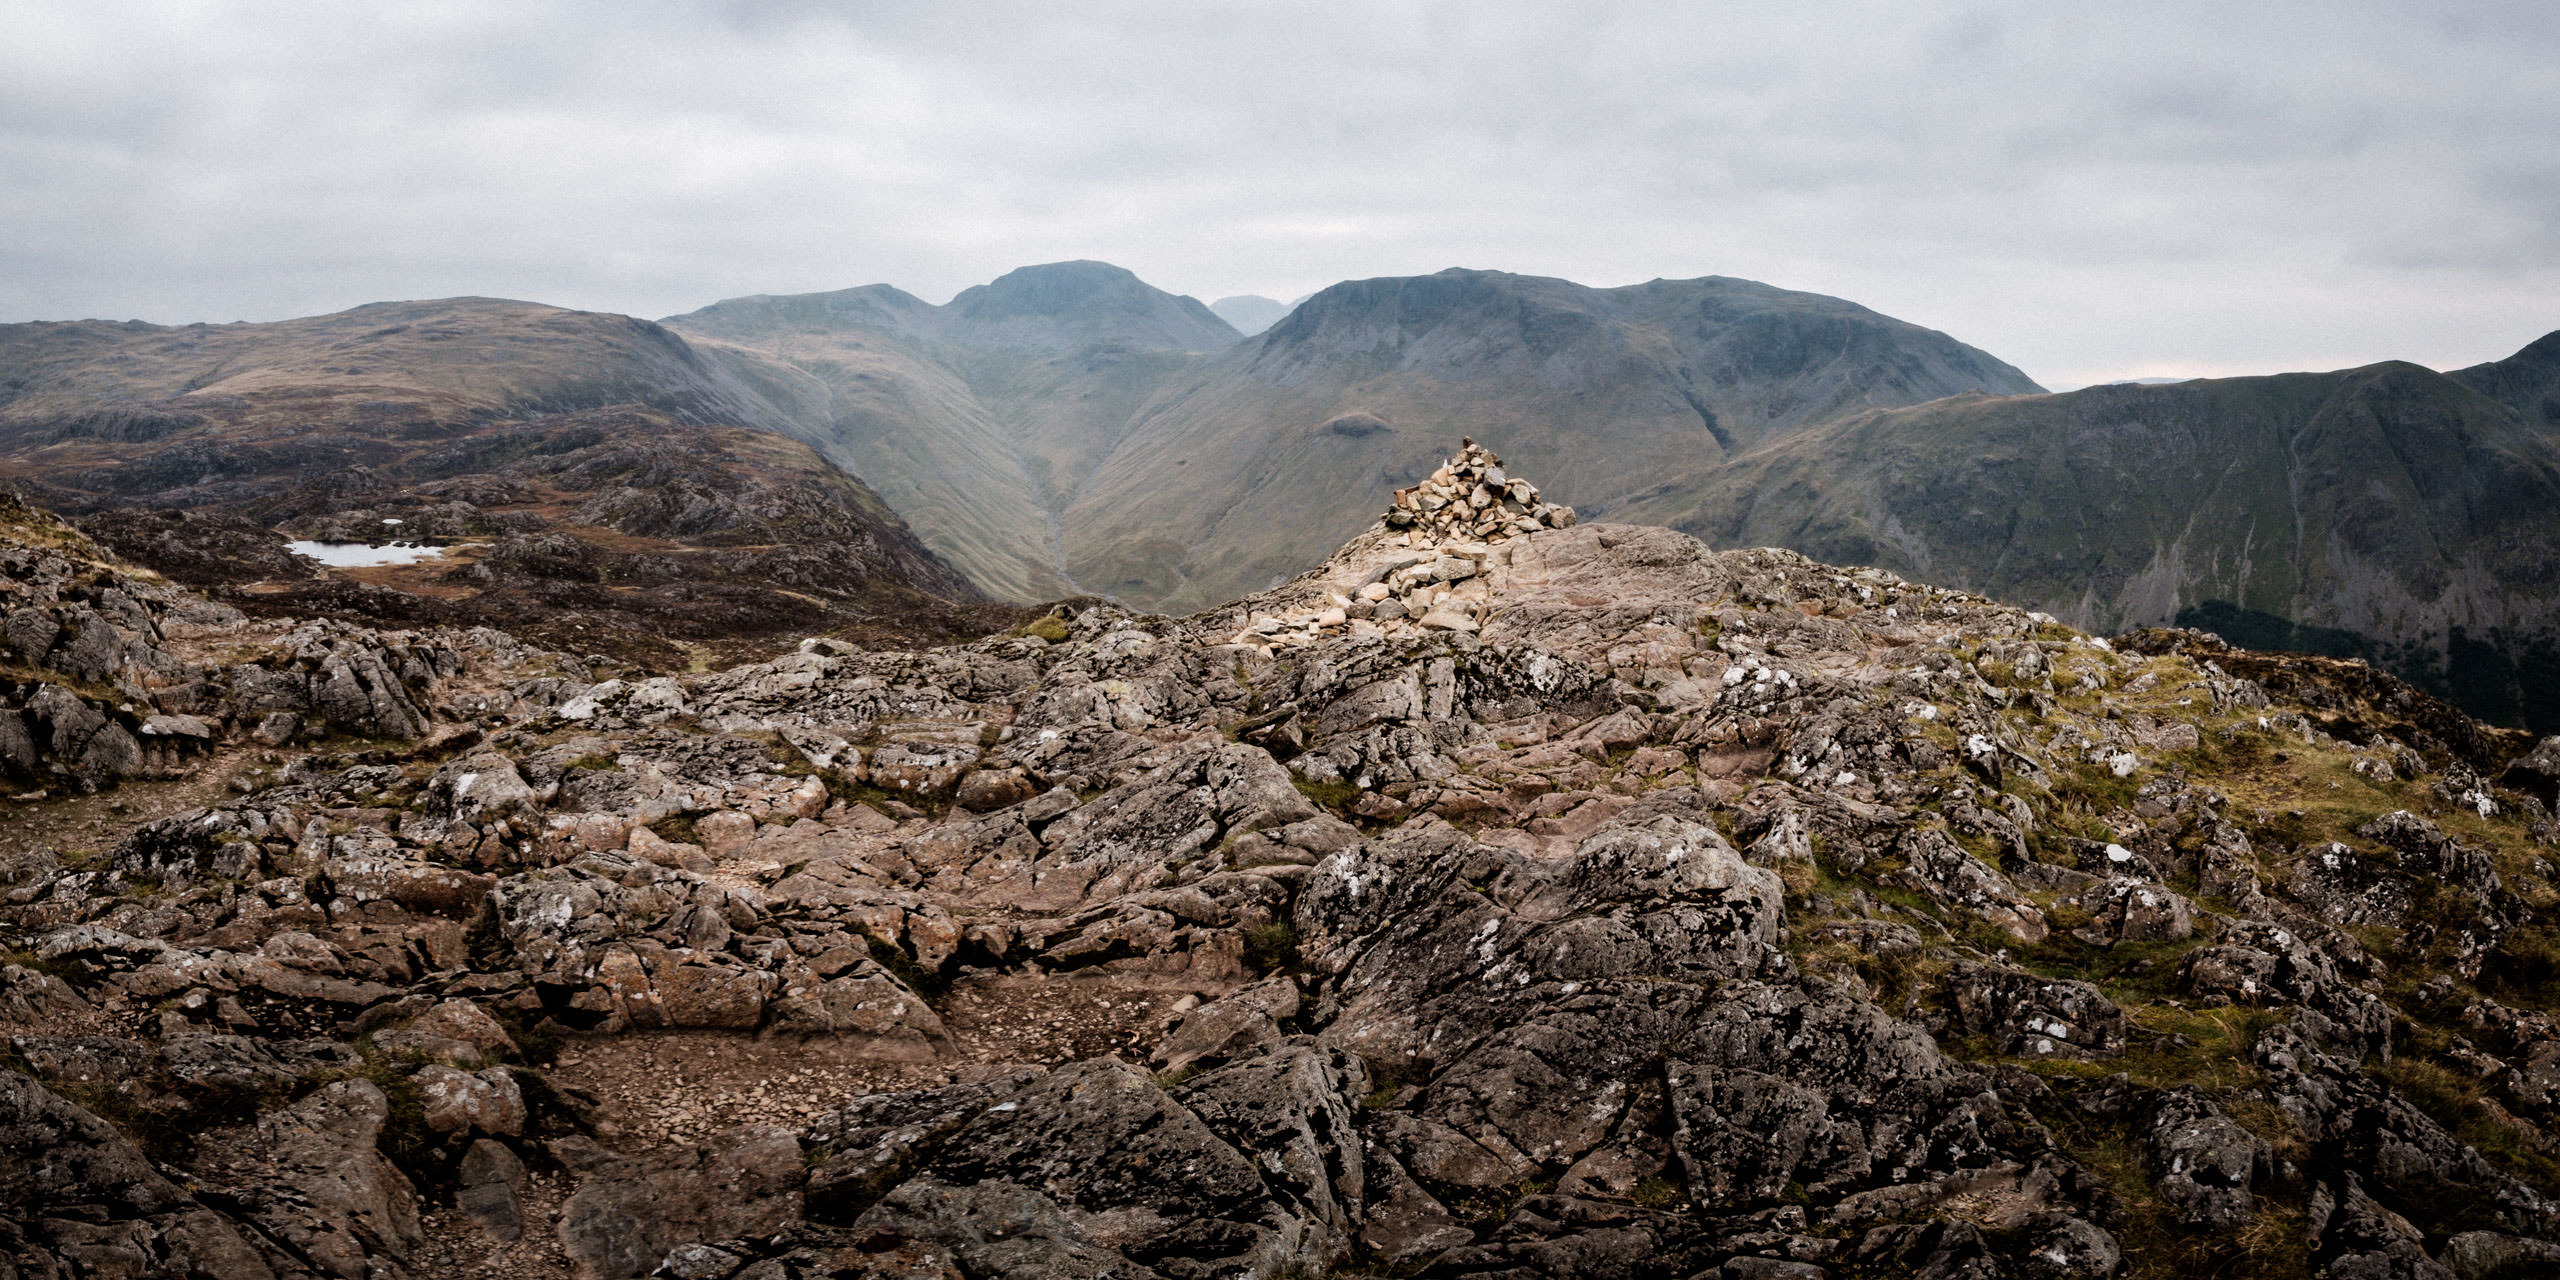 The summit of Haystacks